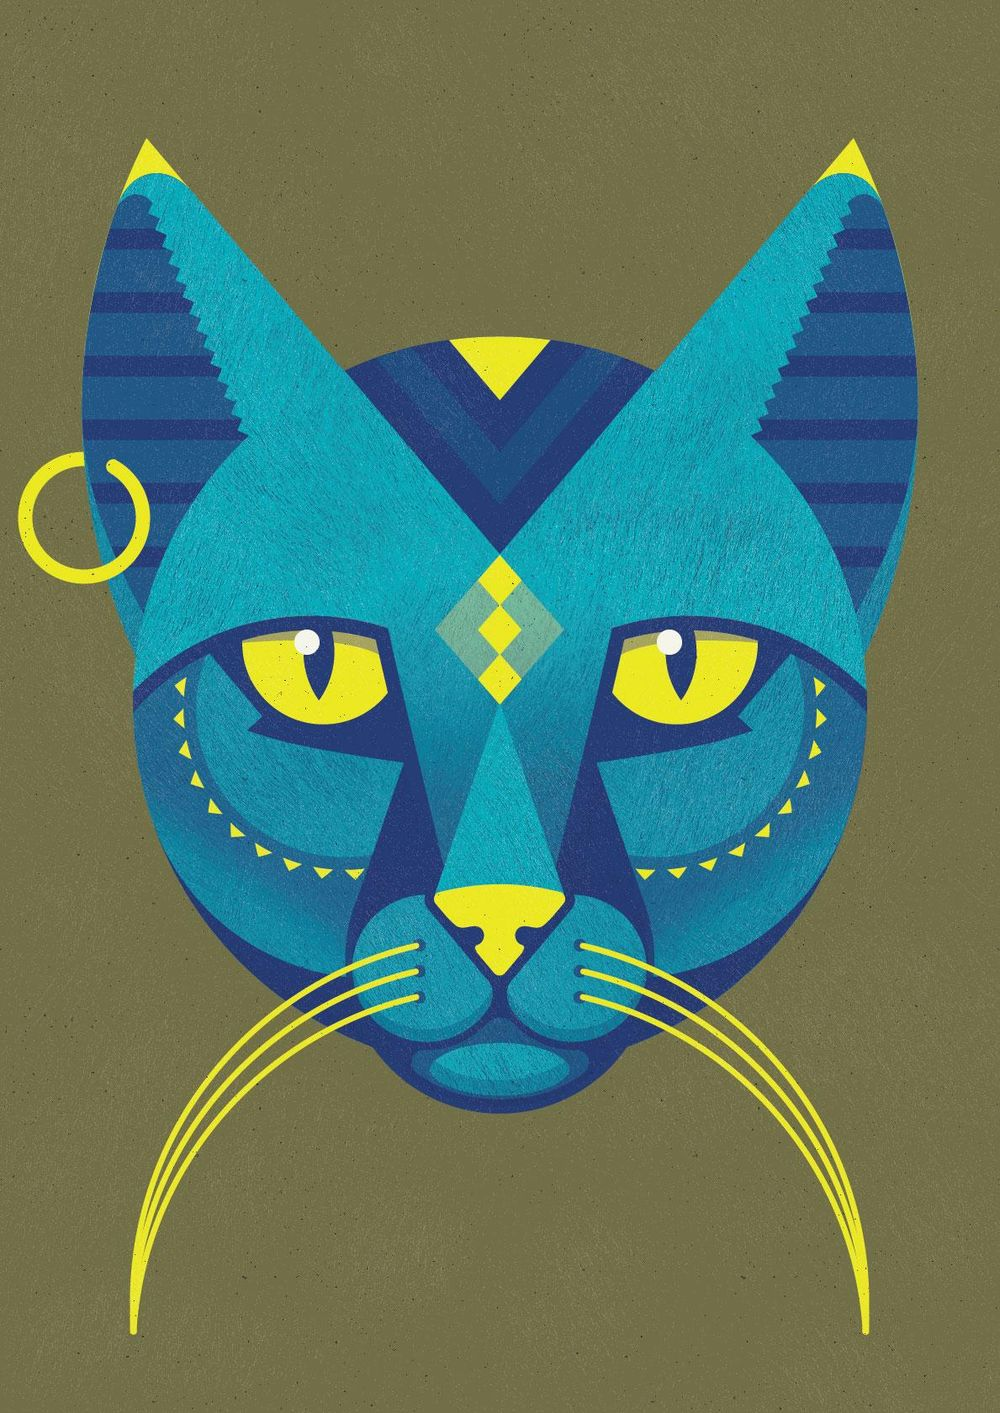 Egyptian inspired cat god - image 8 - student project